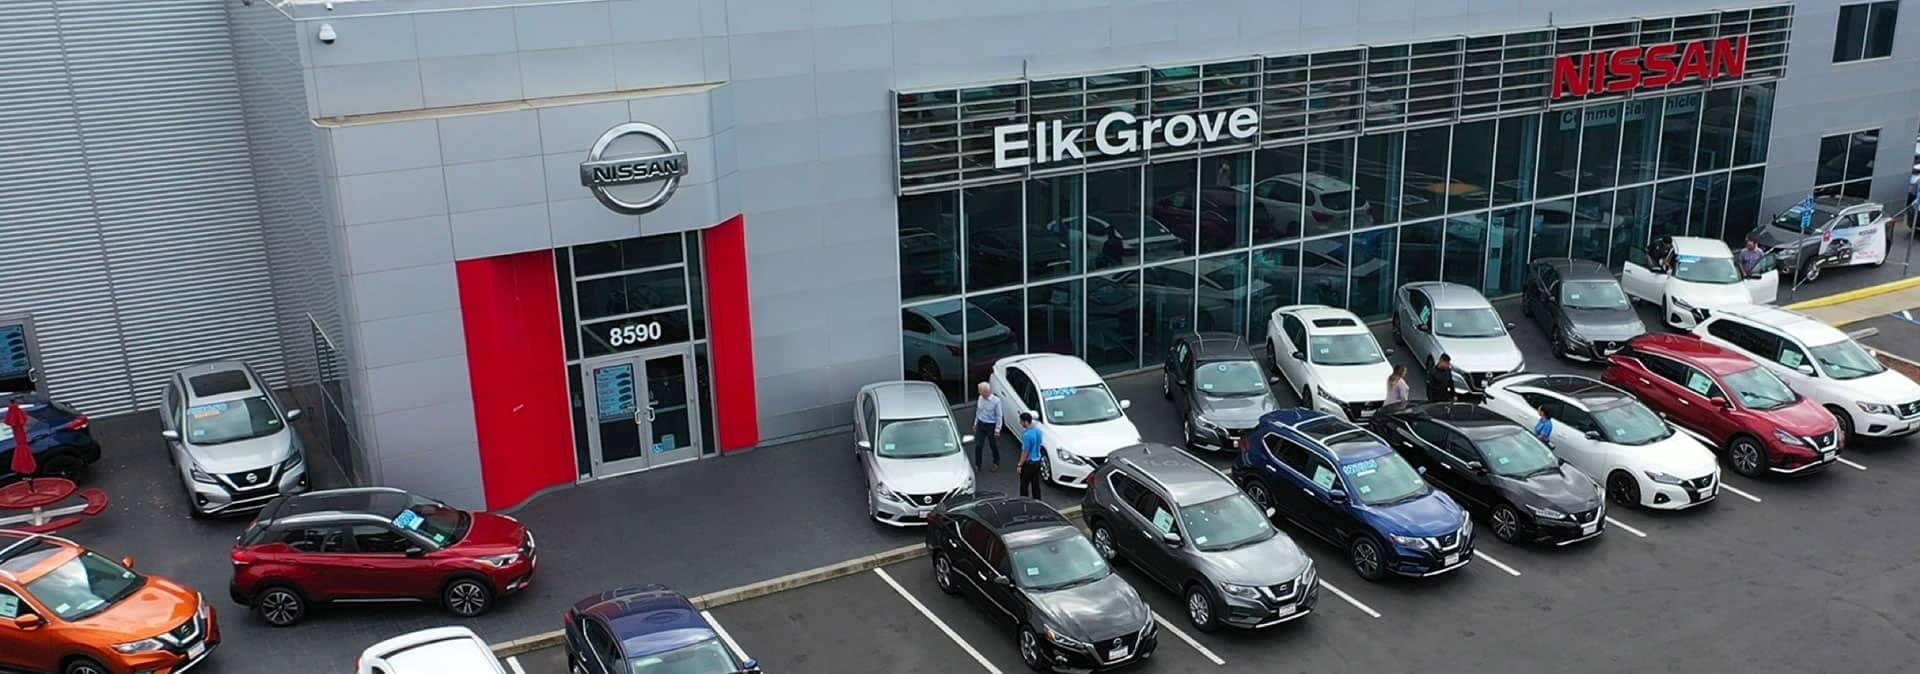 elk-grove-nissan-exterior-view-of-the-dealership